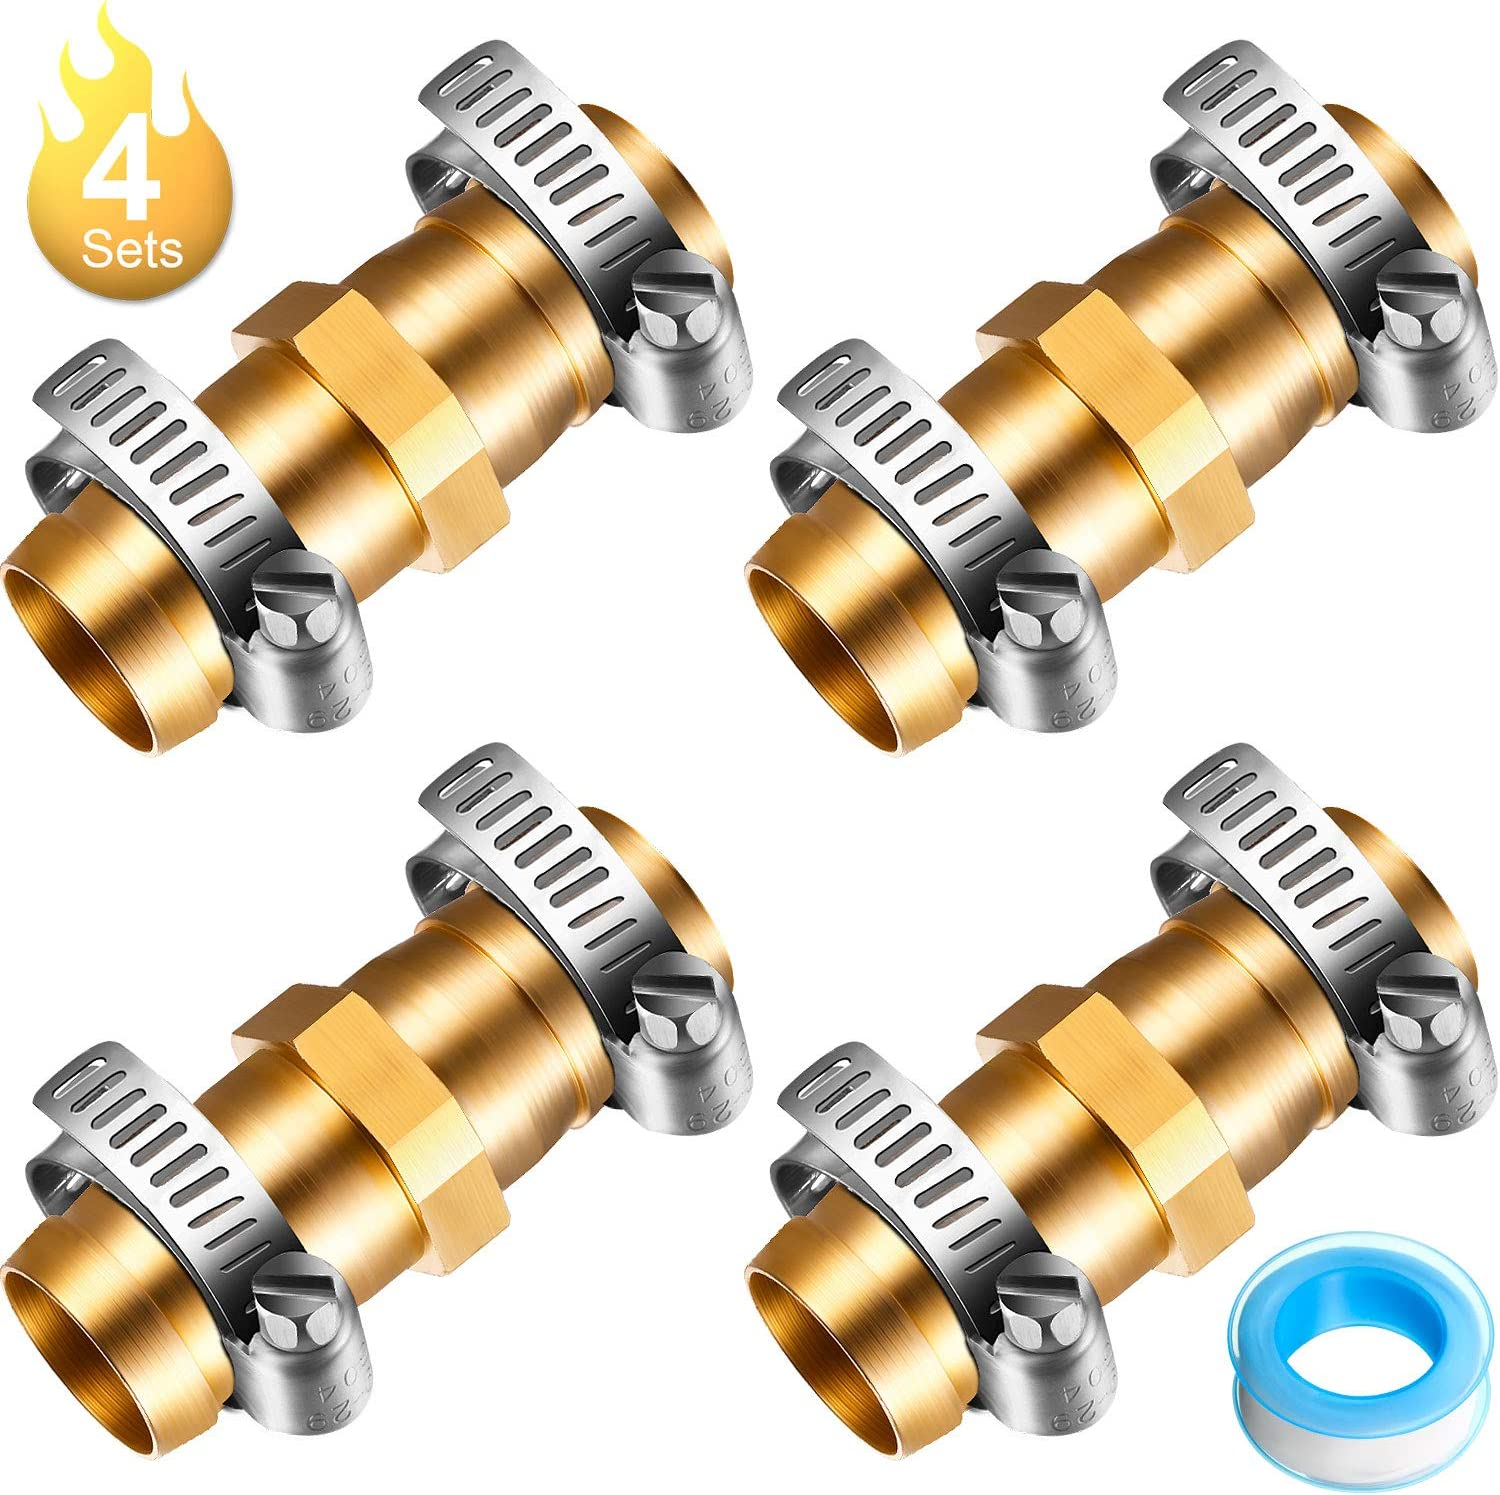 4 Sets 5/8 Inch Brass Garden Hose Connector Hose Repair Kit Water Hose Mender End Fitting Splicer Mender with 8 Pieces Stainless Steel Clamp and Seal Tape